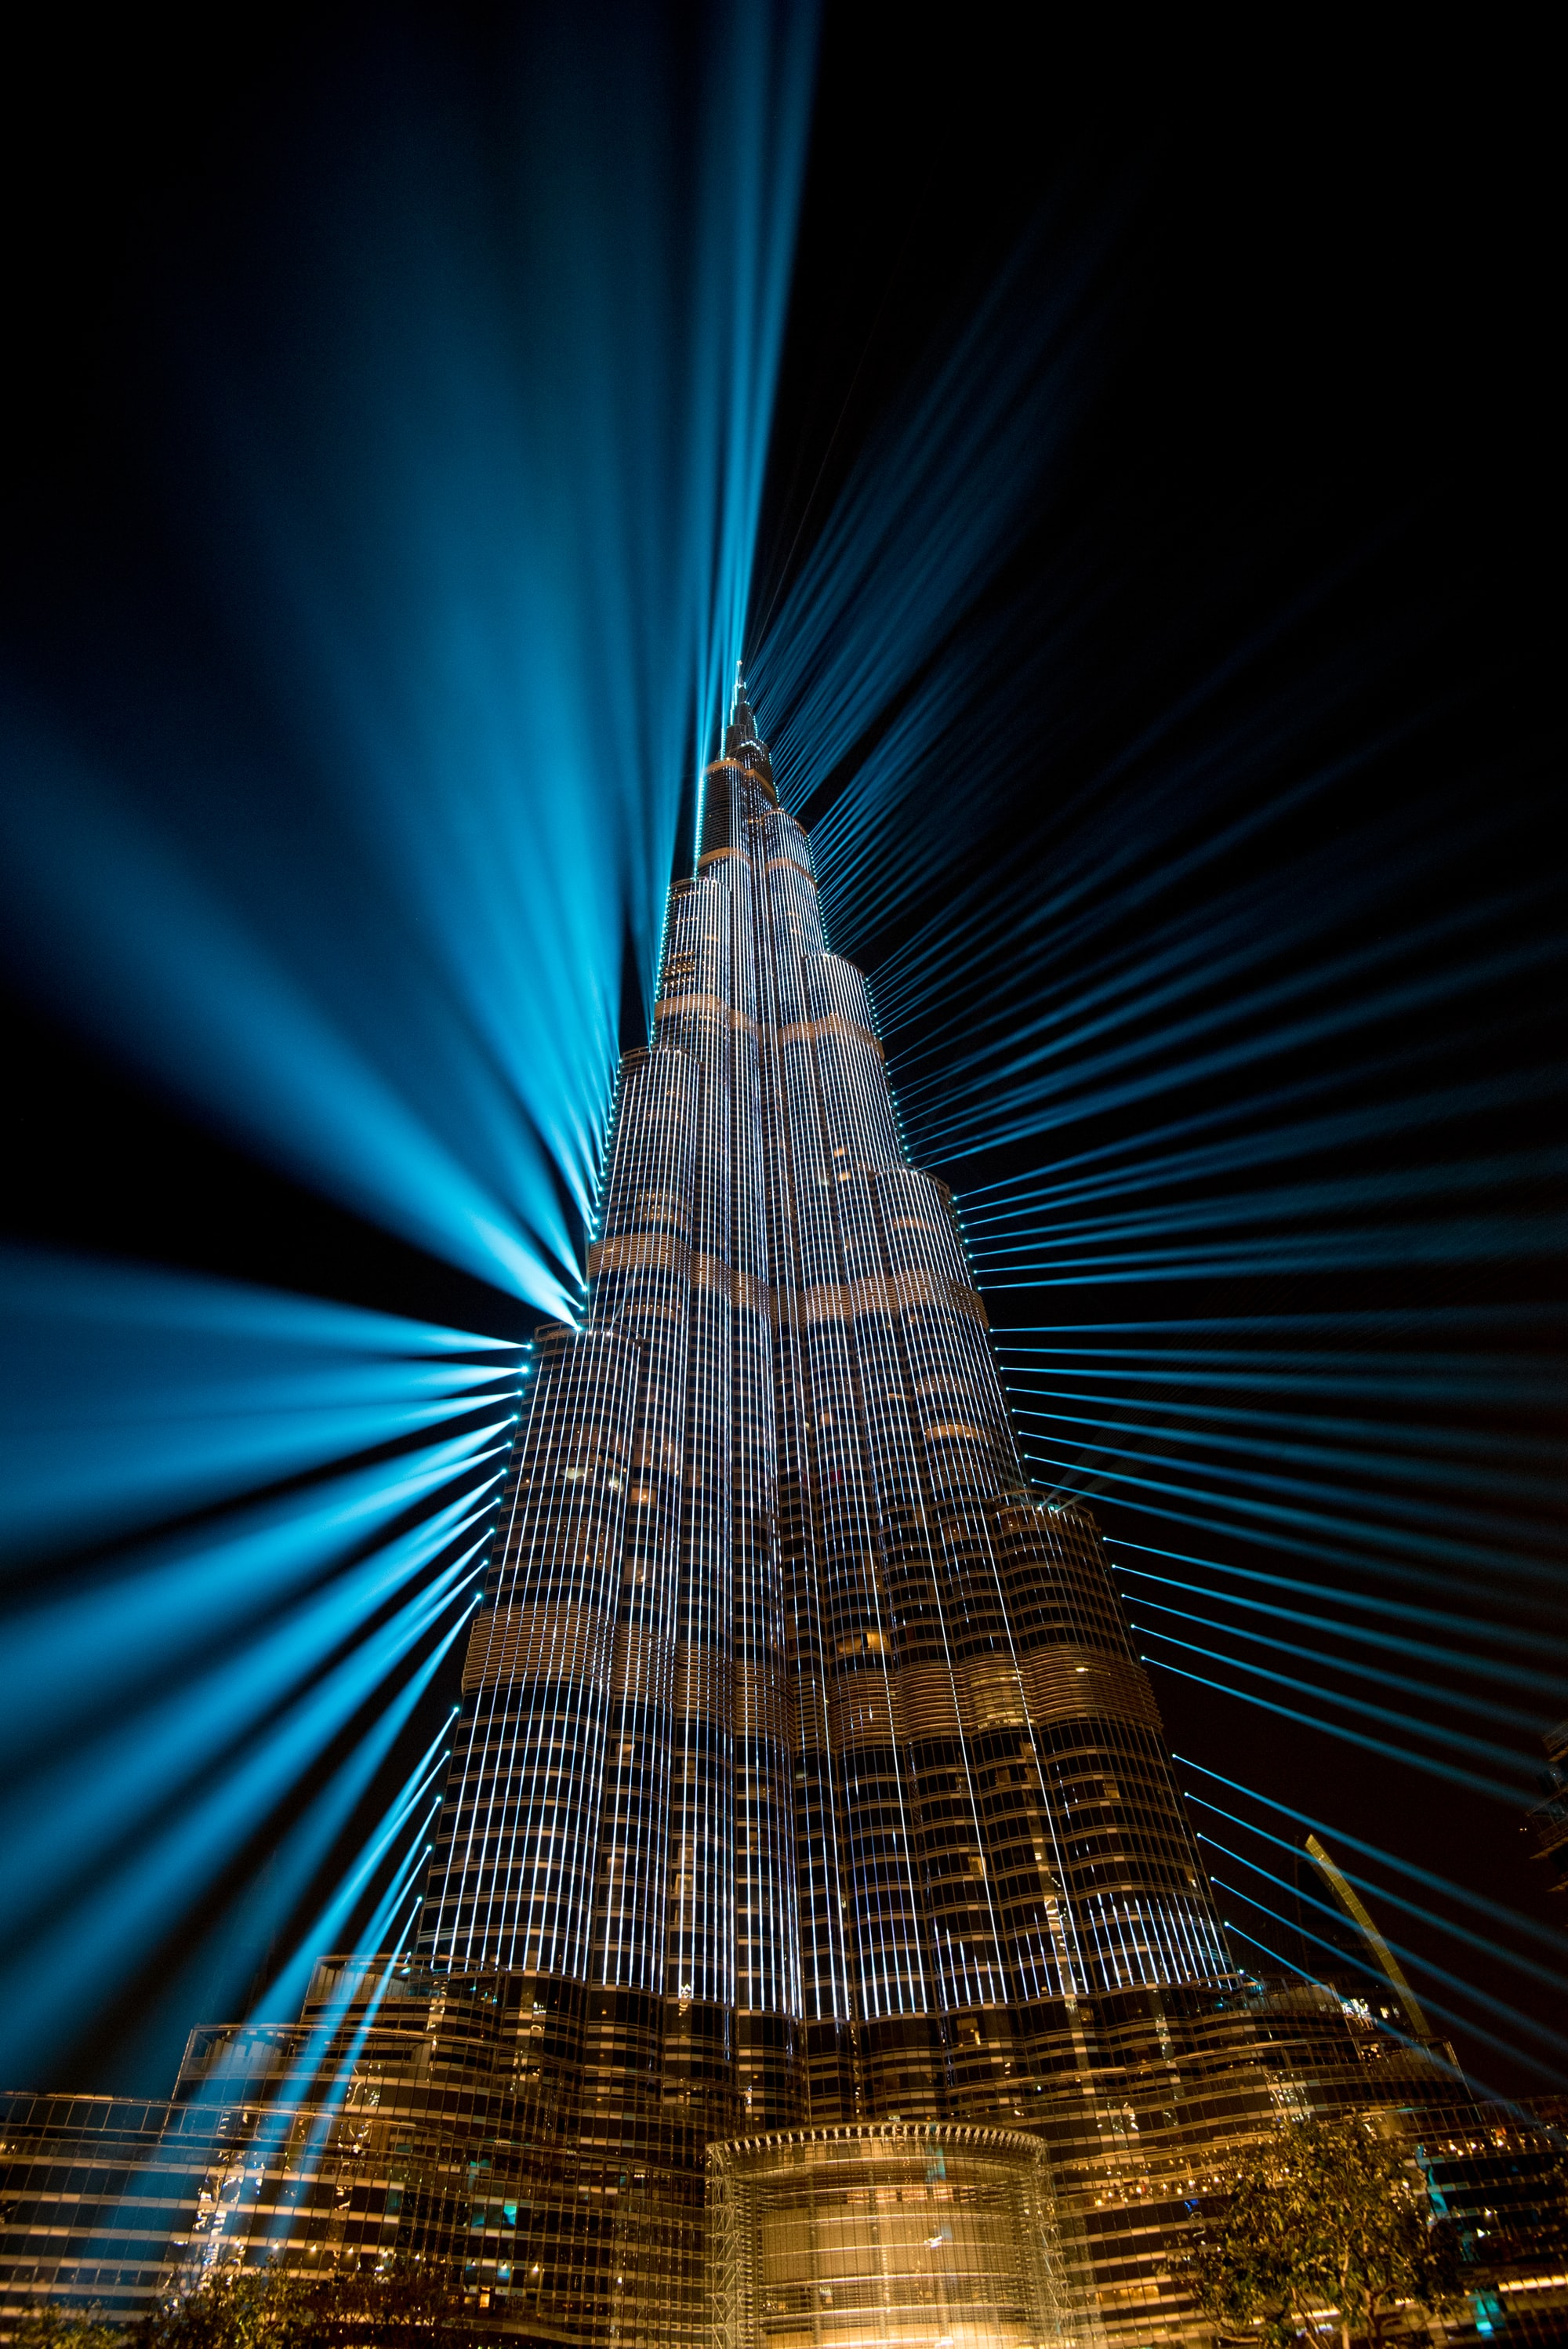 The Burj Khalifa is the tallest tower in the world. 